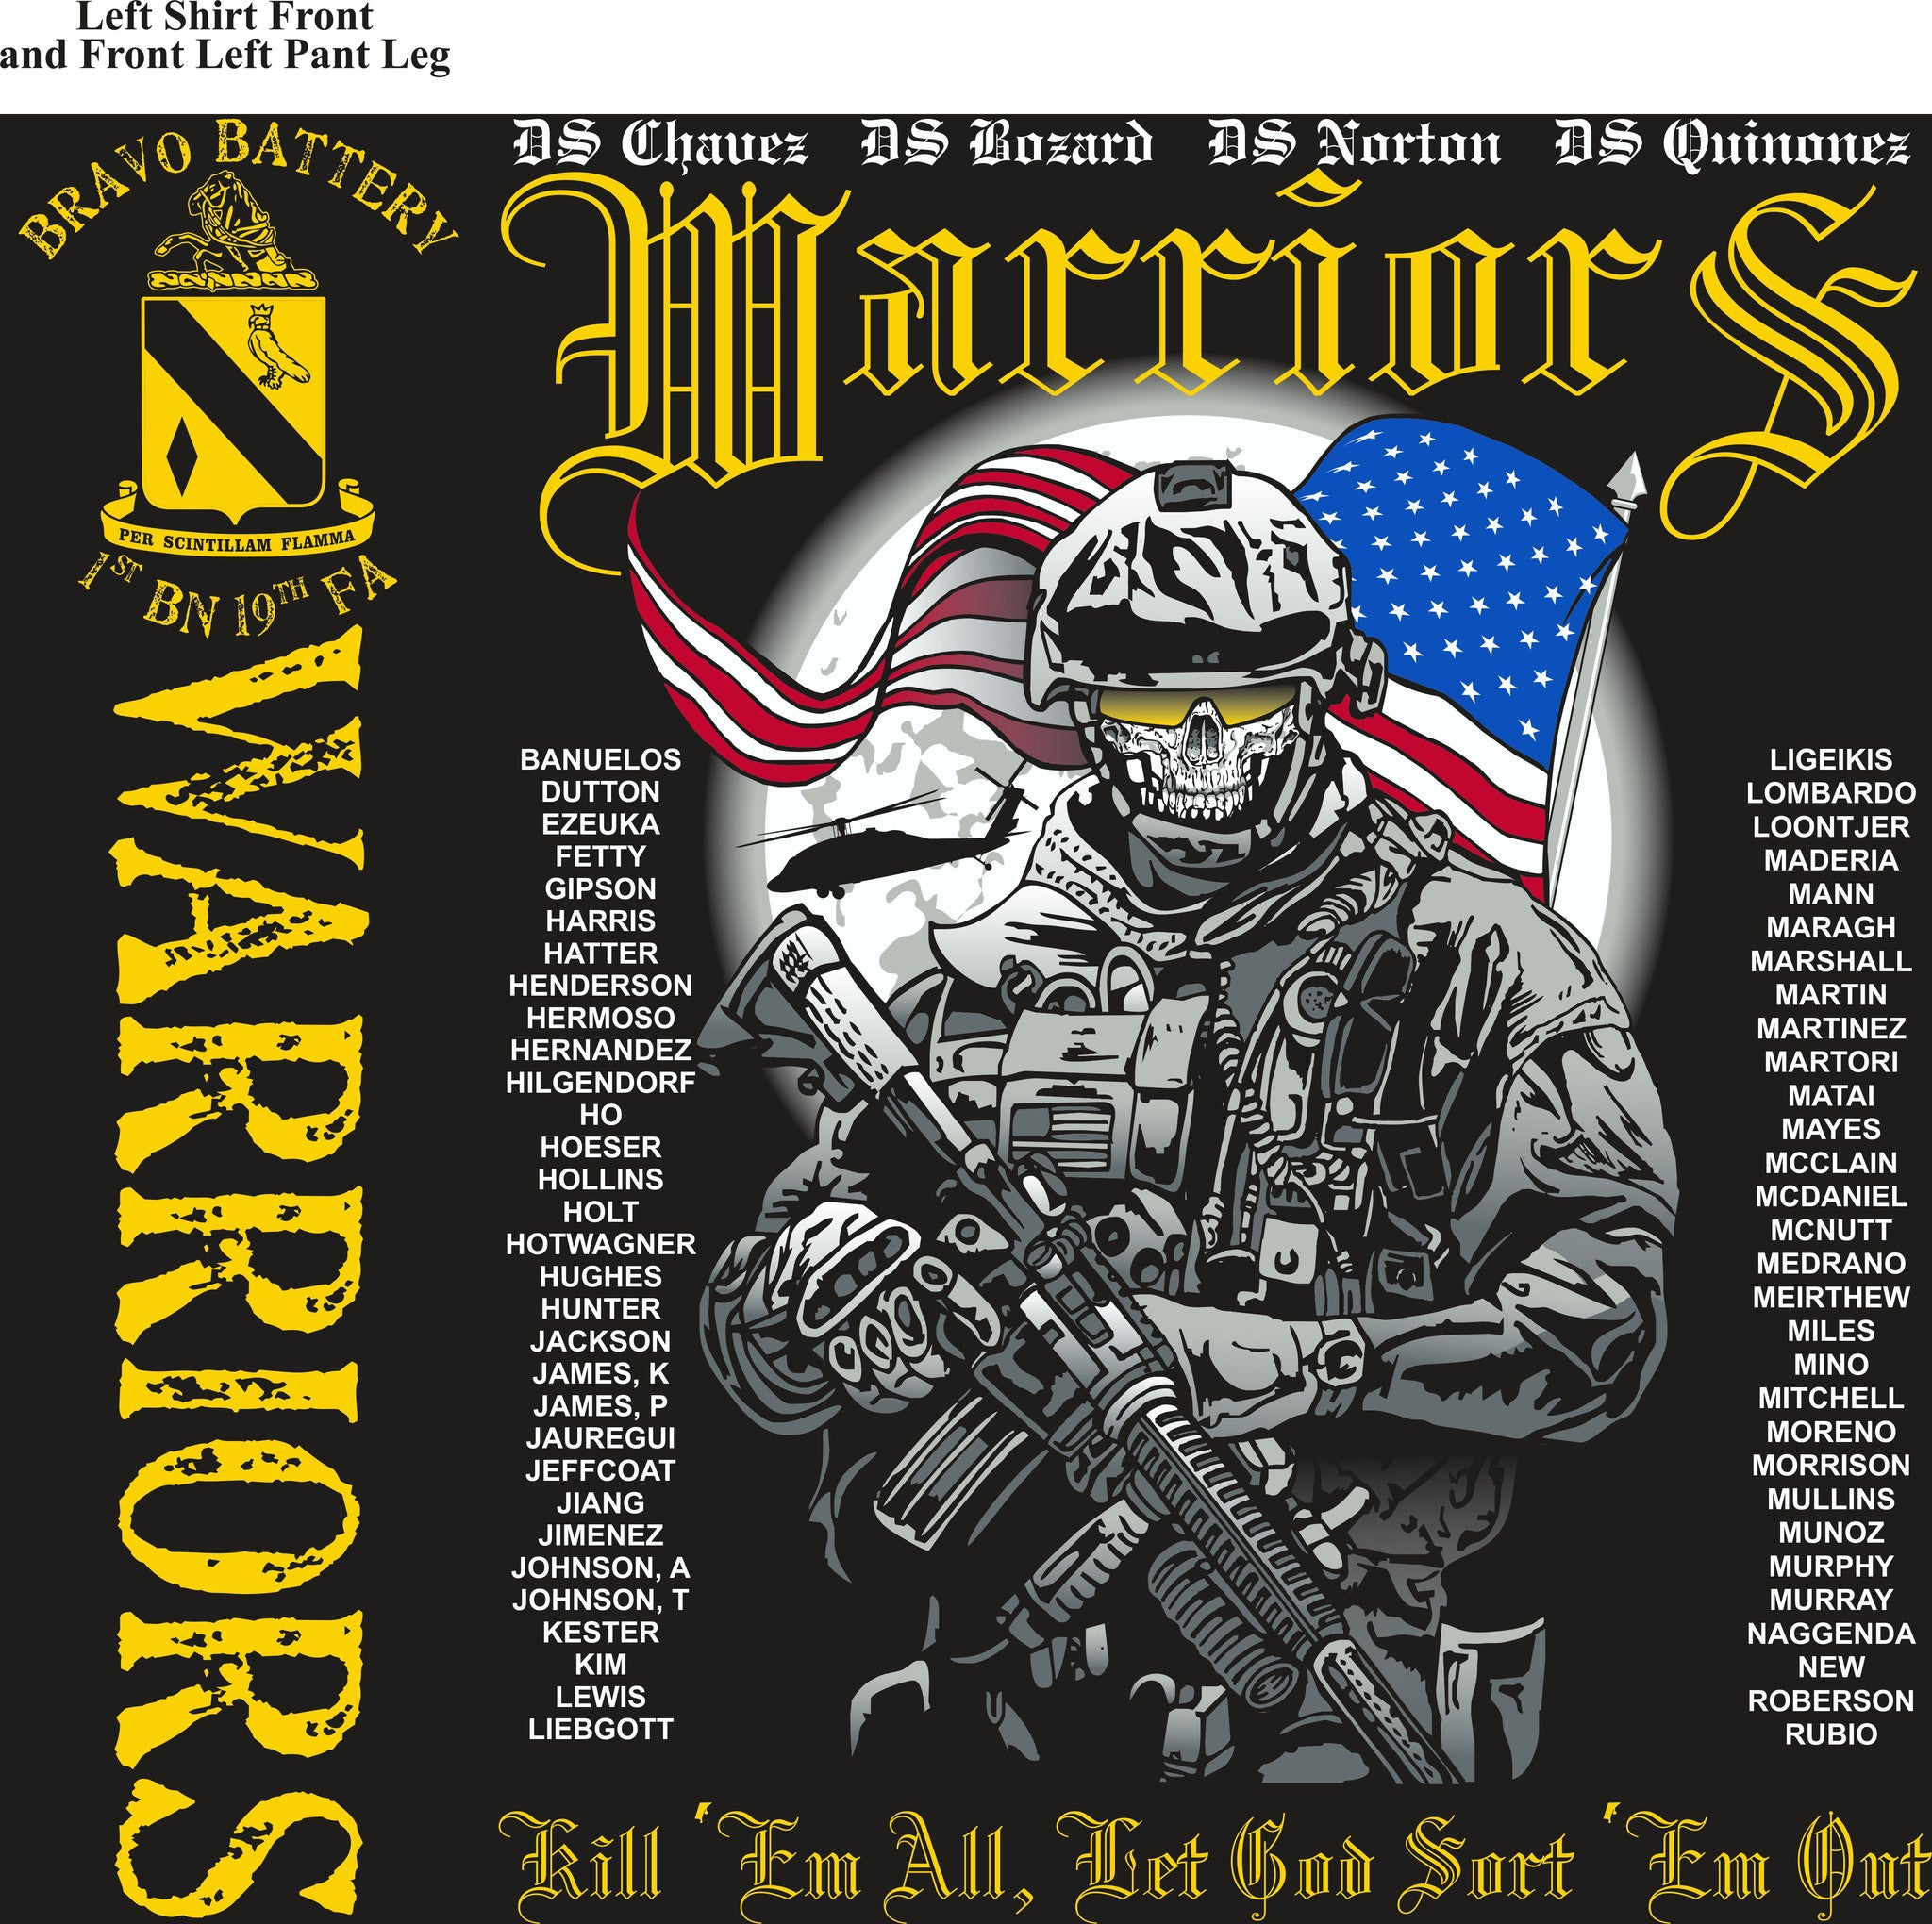 PLATOON SHIRTS (2nd generation print) BRAVO 1st 19th WARRIORS AUG 2016